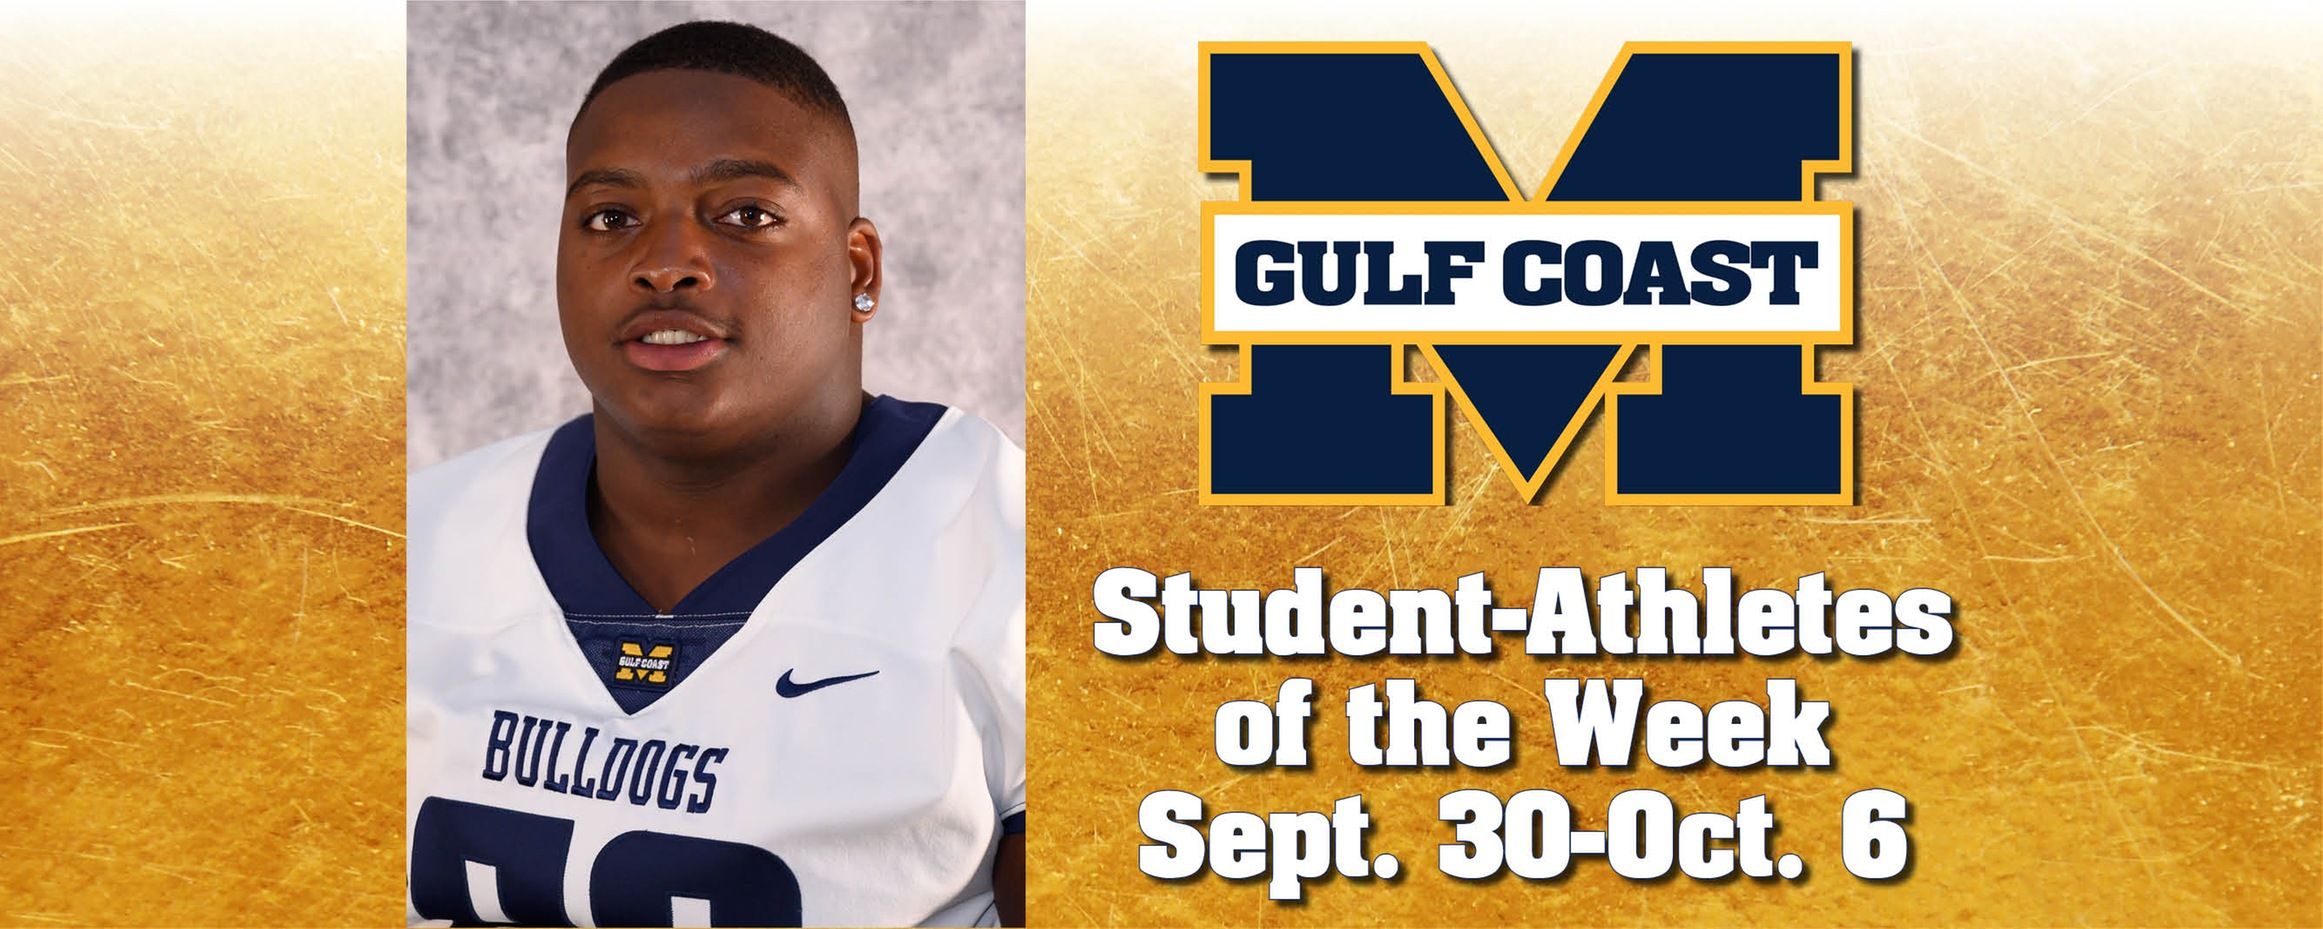 Merritt named MGCCC Student-Athlete of the Week